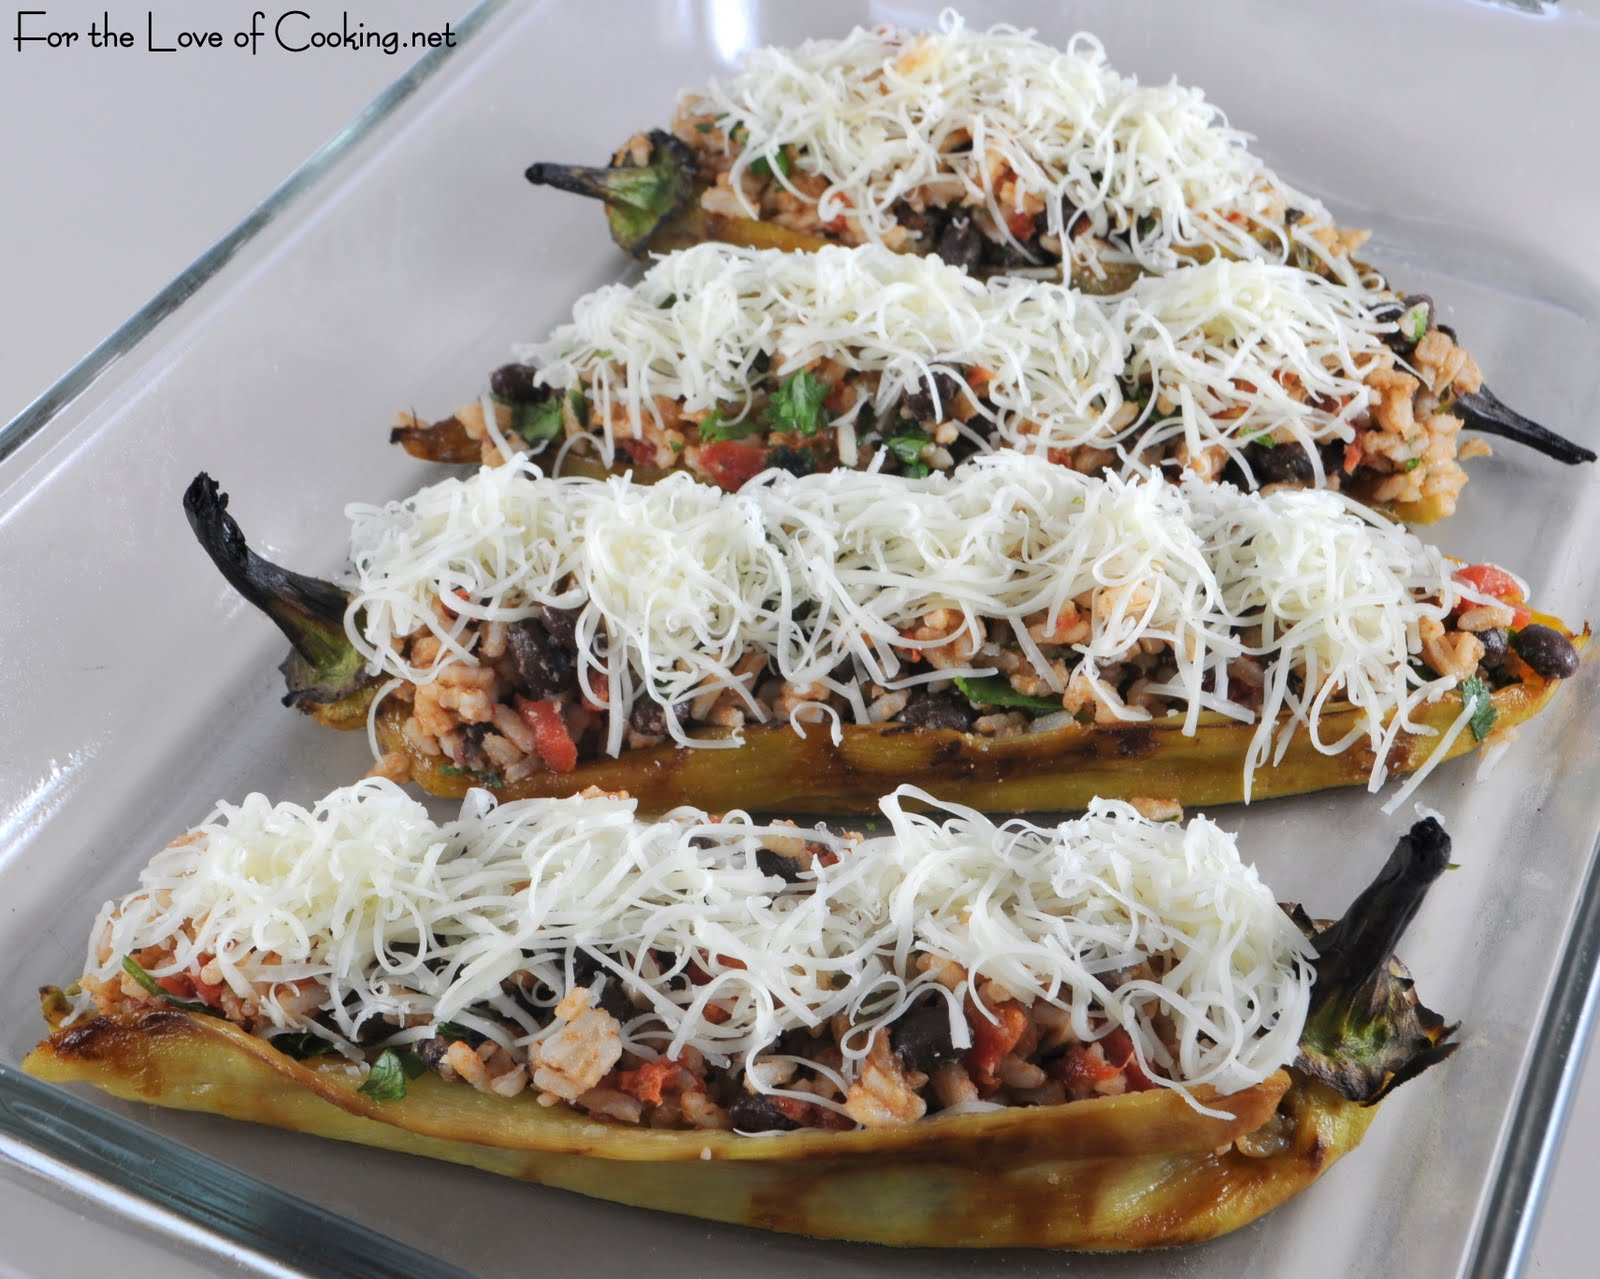 with olives peppers queso fresco cheese chili stuffed bell peppers ...